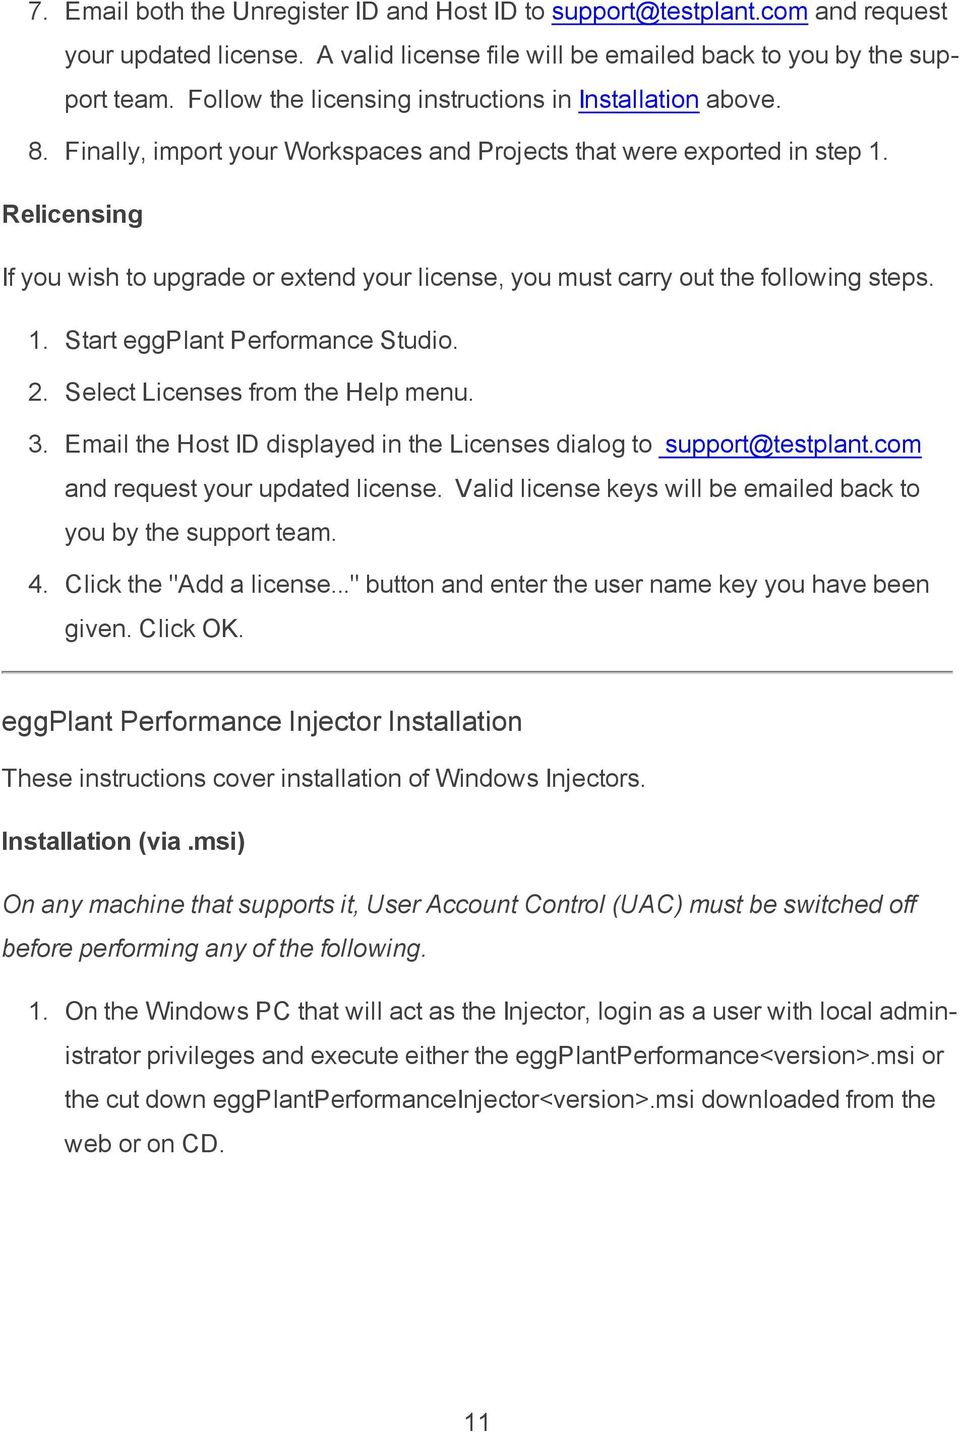 eggplant Performance Release Notes 5 Version About This